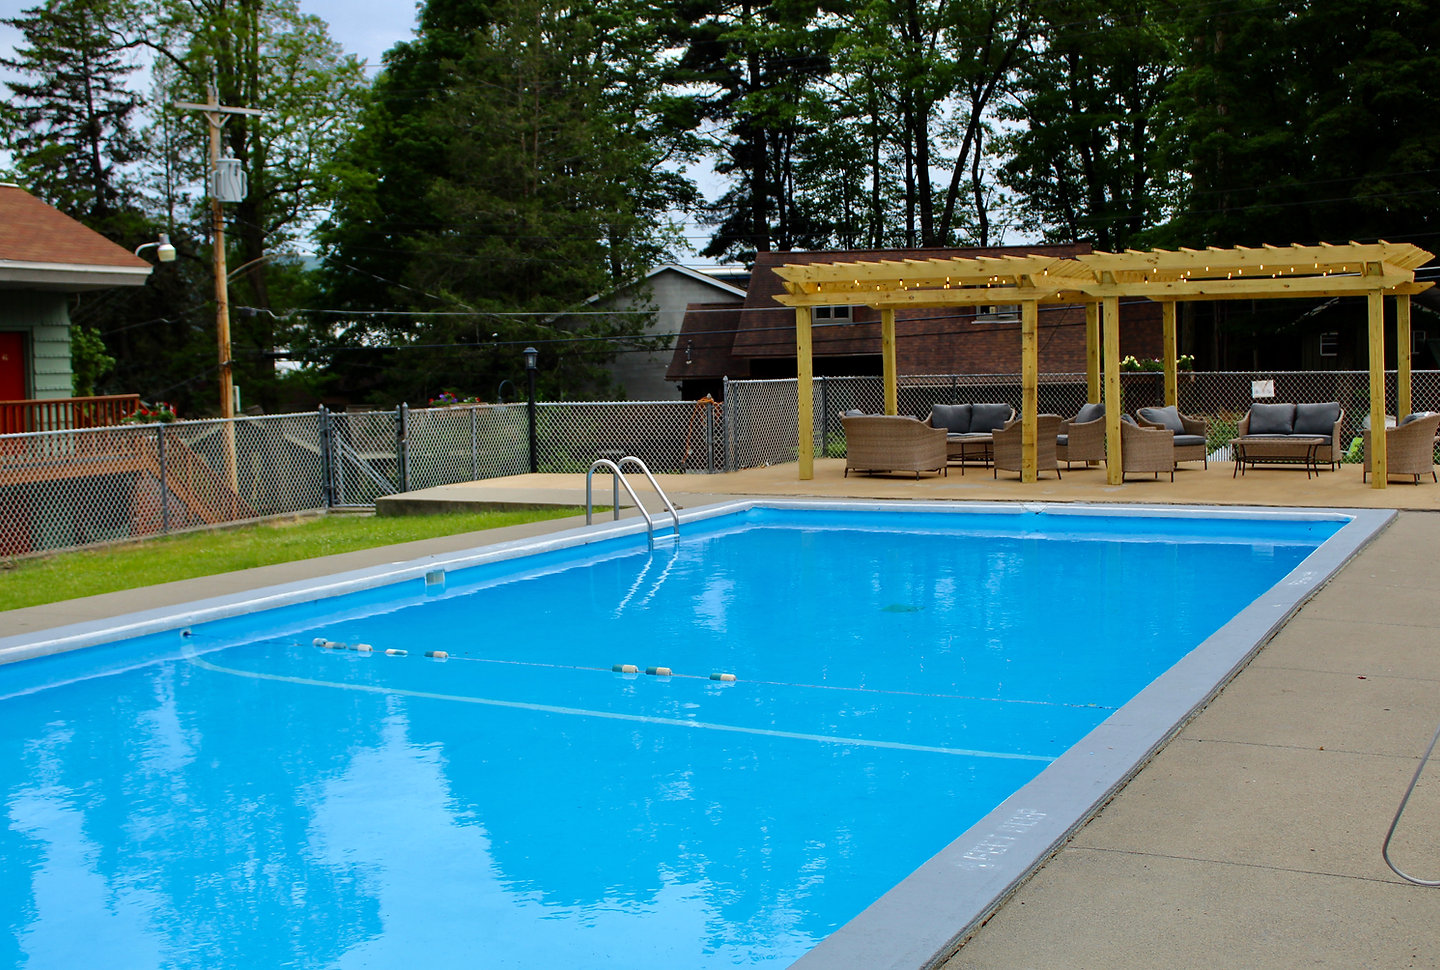 Swiming pool and sundeck with pergolas at the lake george motel montreal at 3 lake avenue in lake george ny